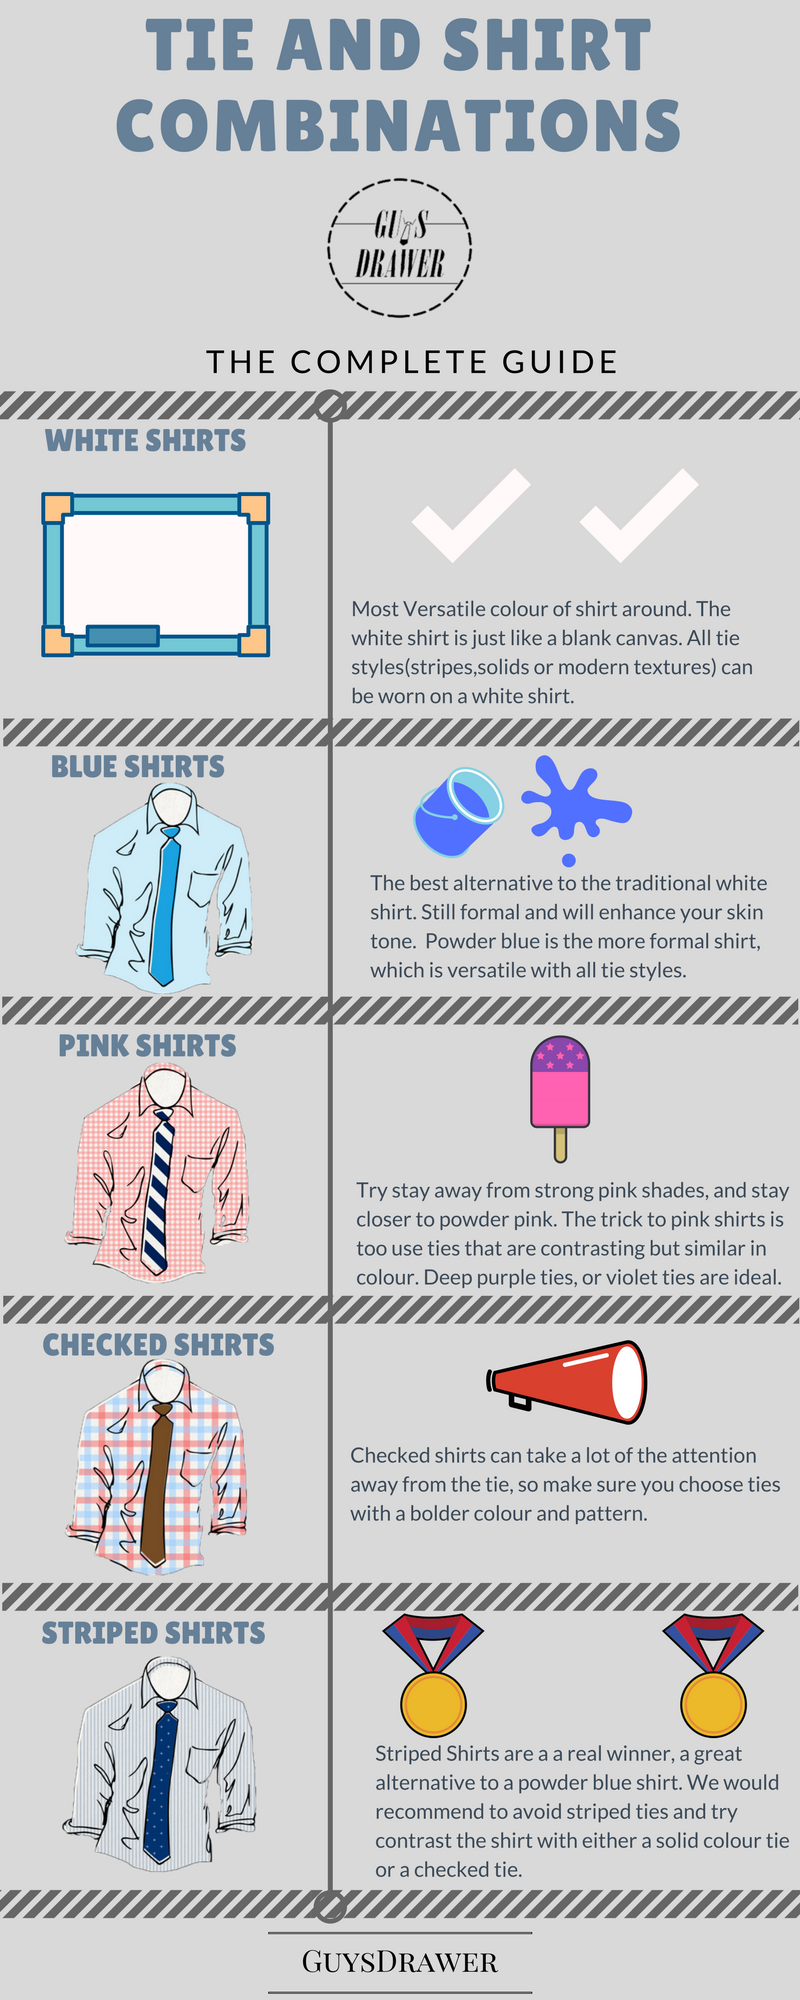 Tie and Shirt Combinations